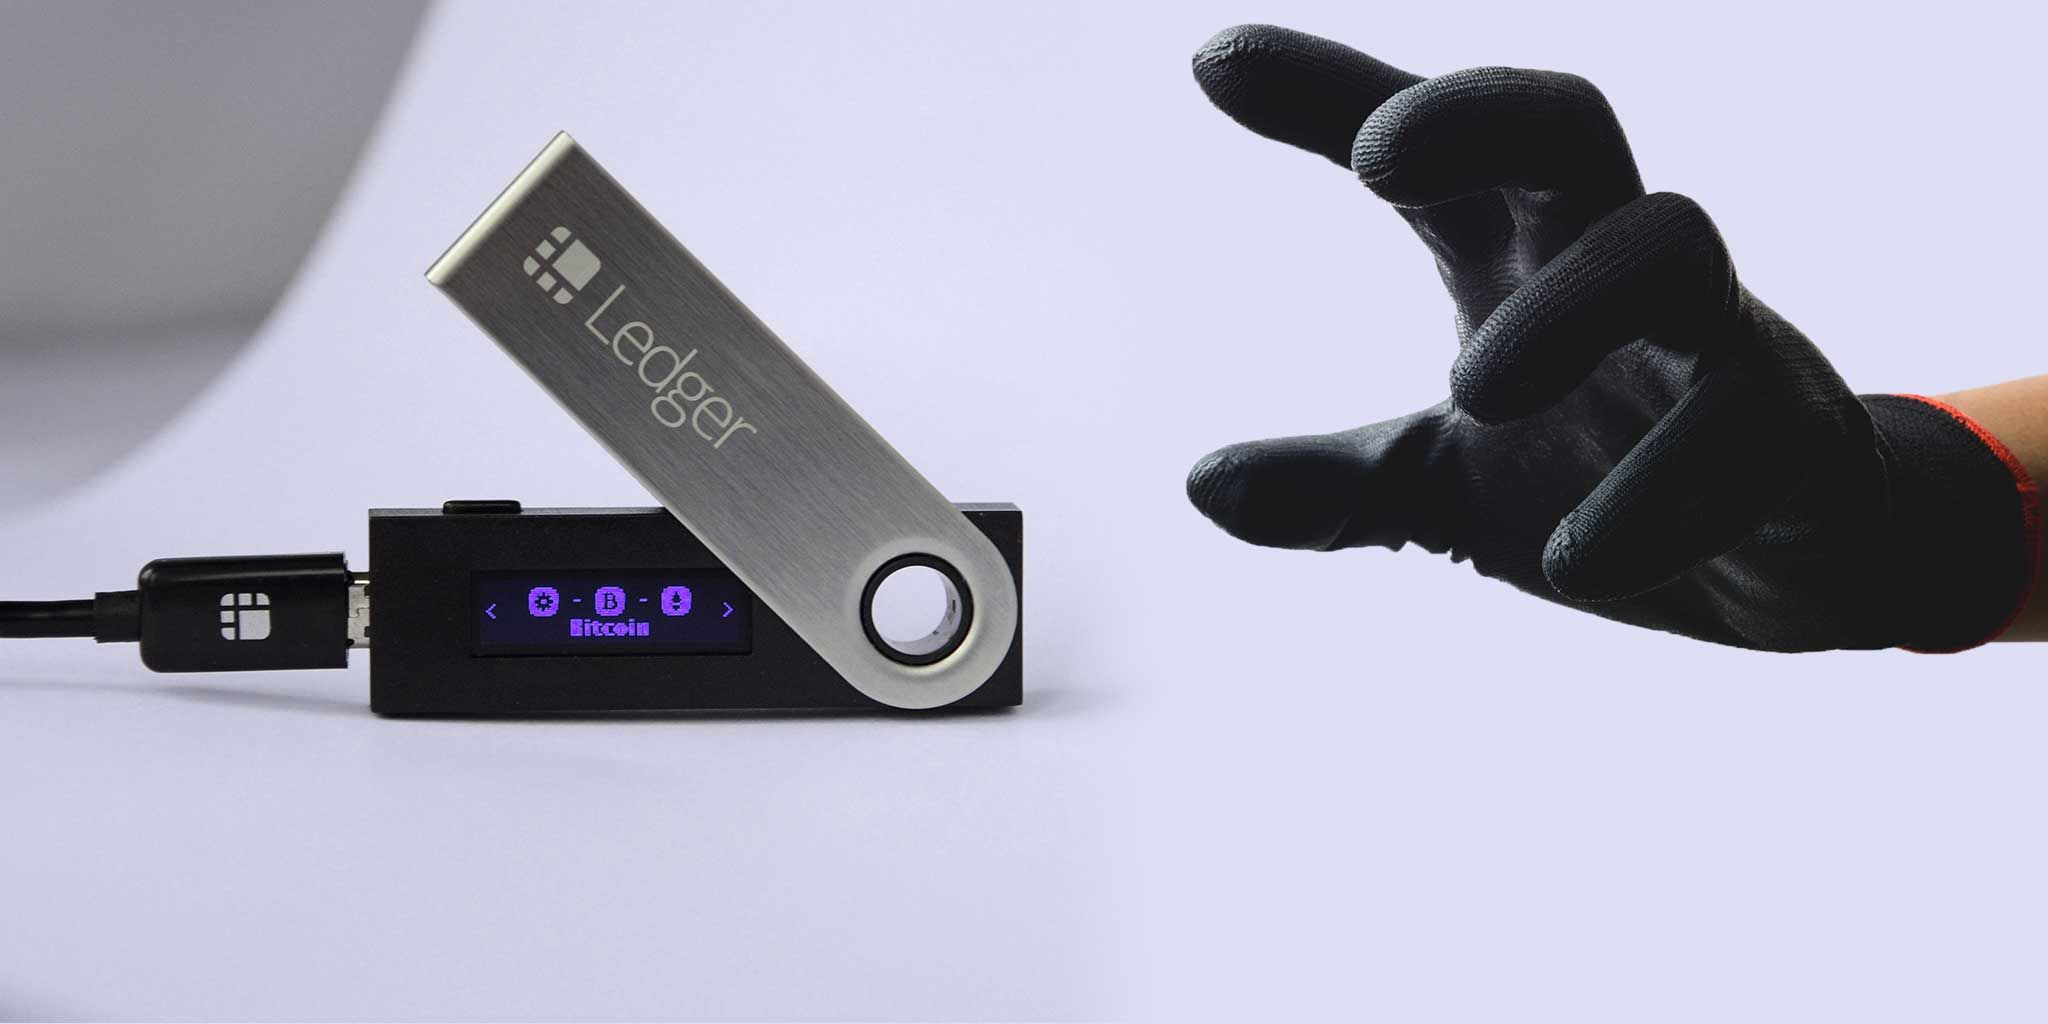 Ledger-wallet-bitcoin-vulnerability-risk-02-06-2018-2048x1024.jpg